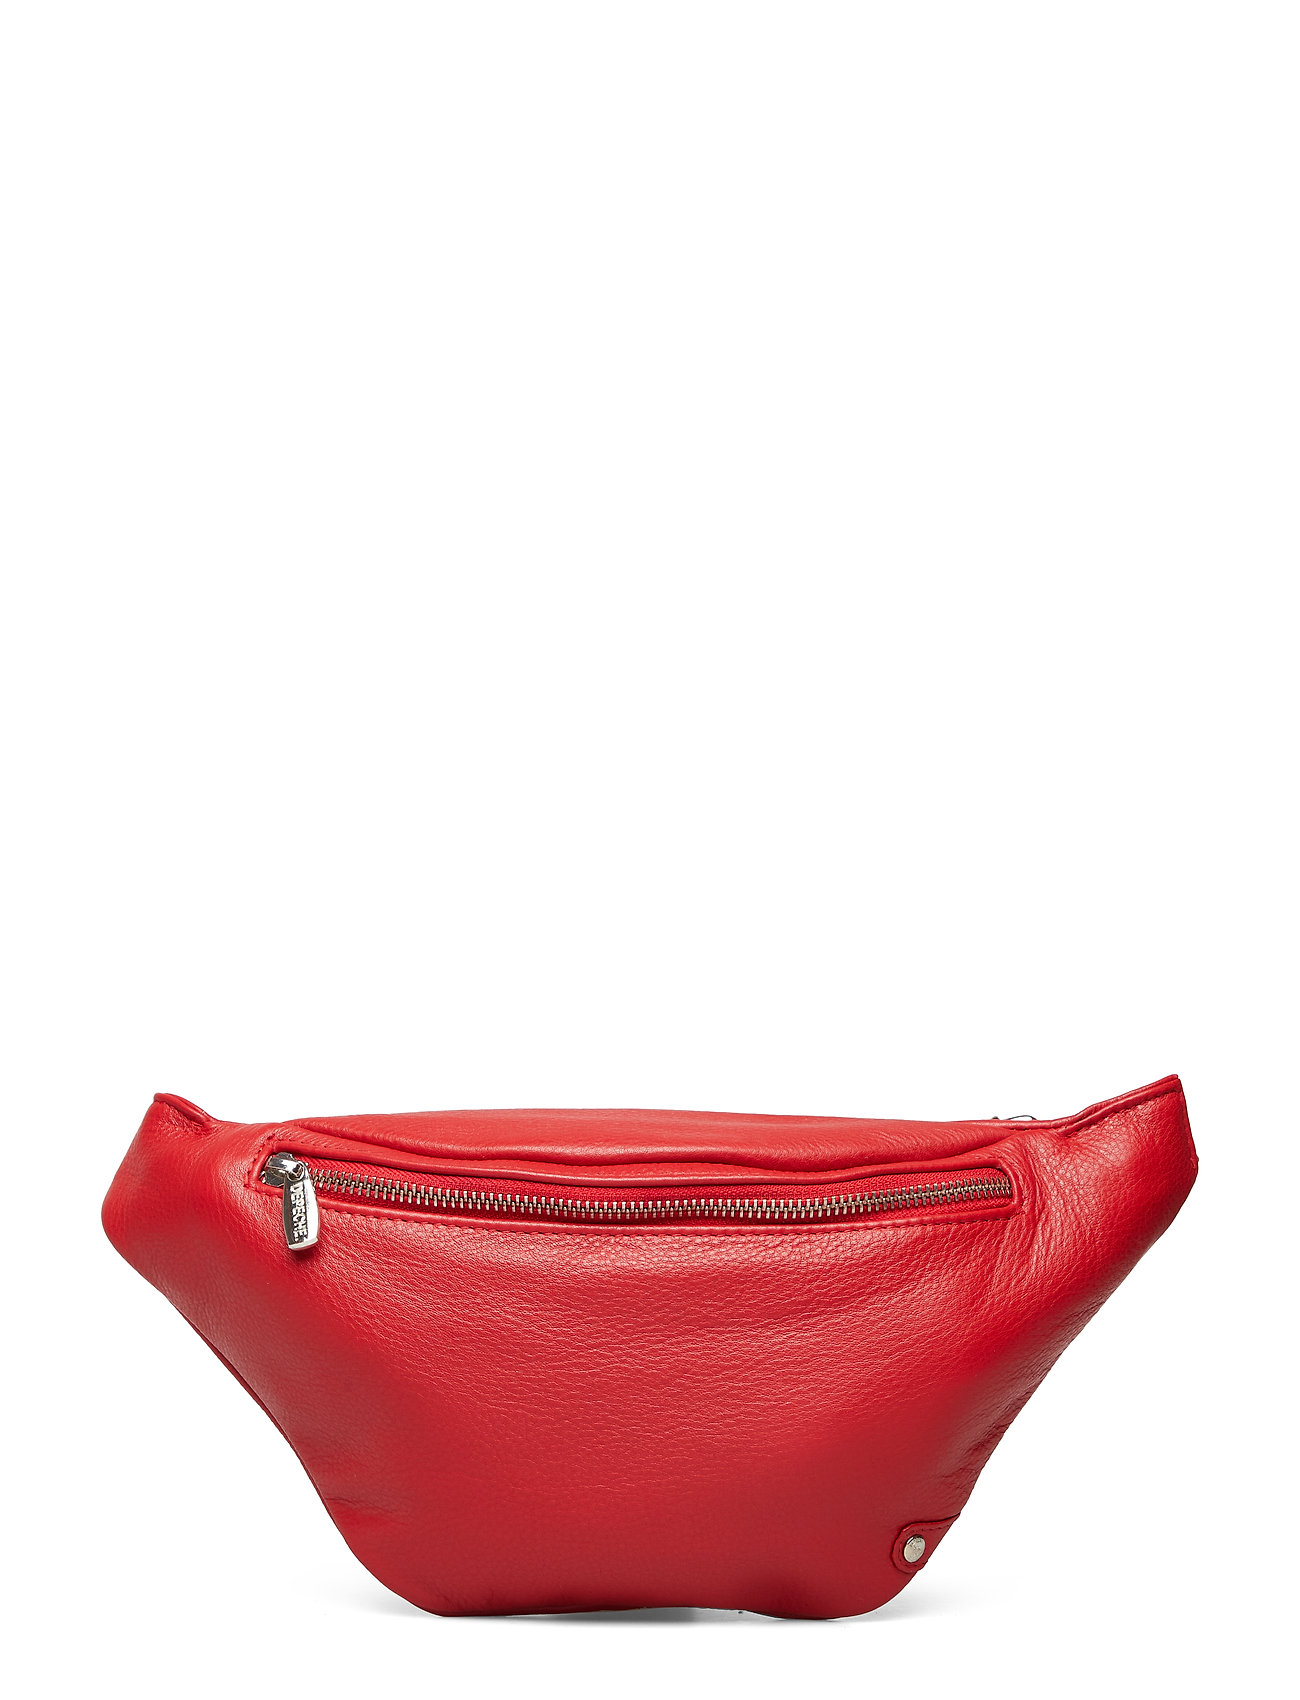 DEPECHE Bum Bag - RED